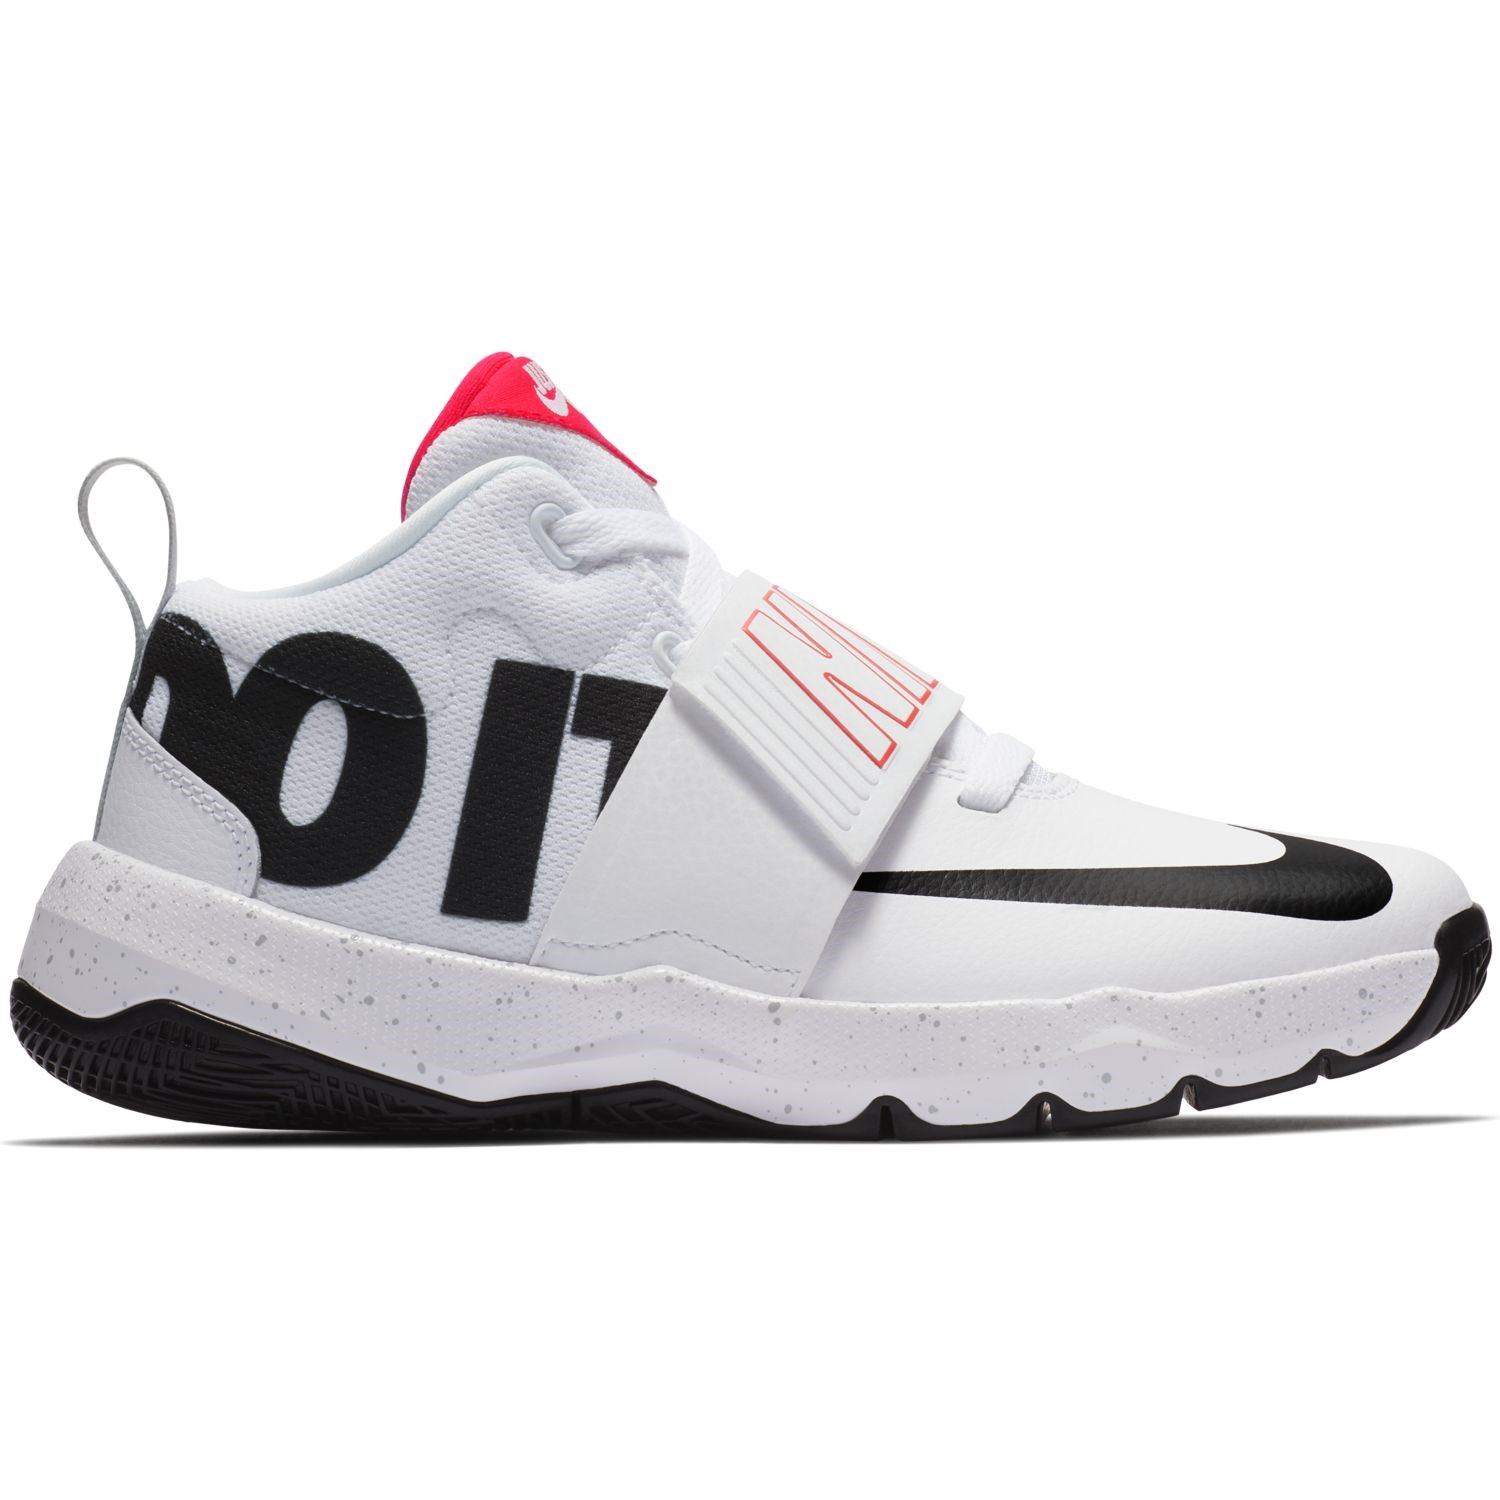 f0d84e011db Nike Team Hustle D 8 JDI GS - Kids Basketball Shoes - White Black ...